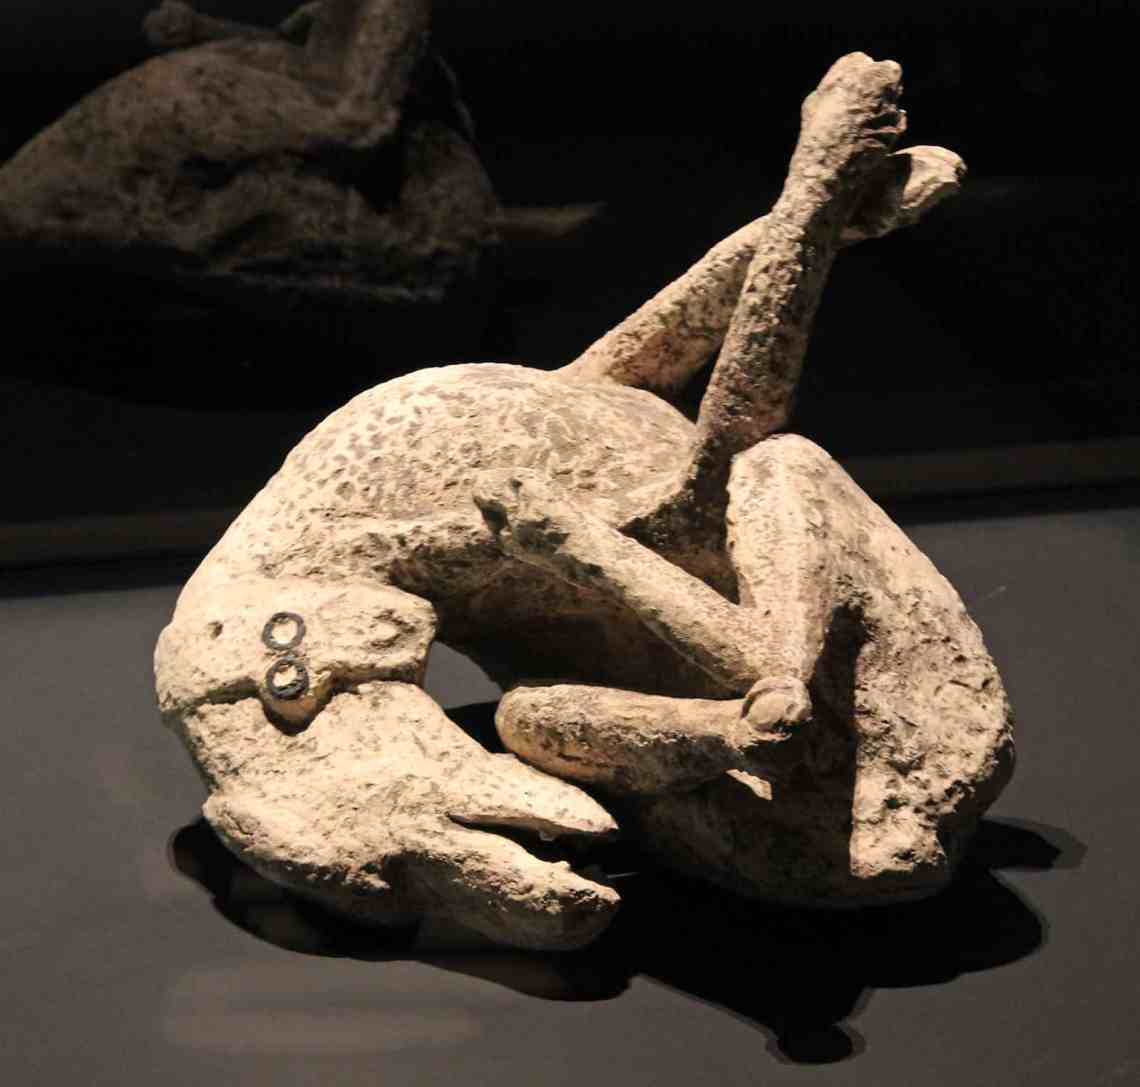 Pompeii Exhibition at the ROM in Toronto